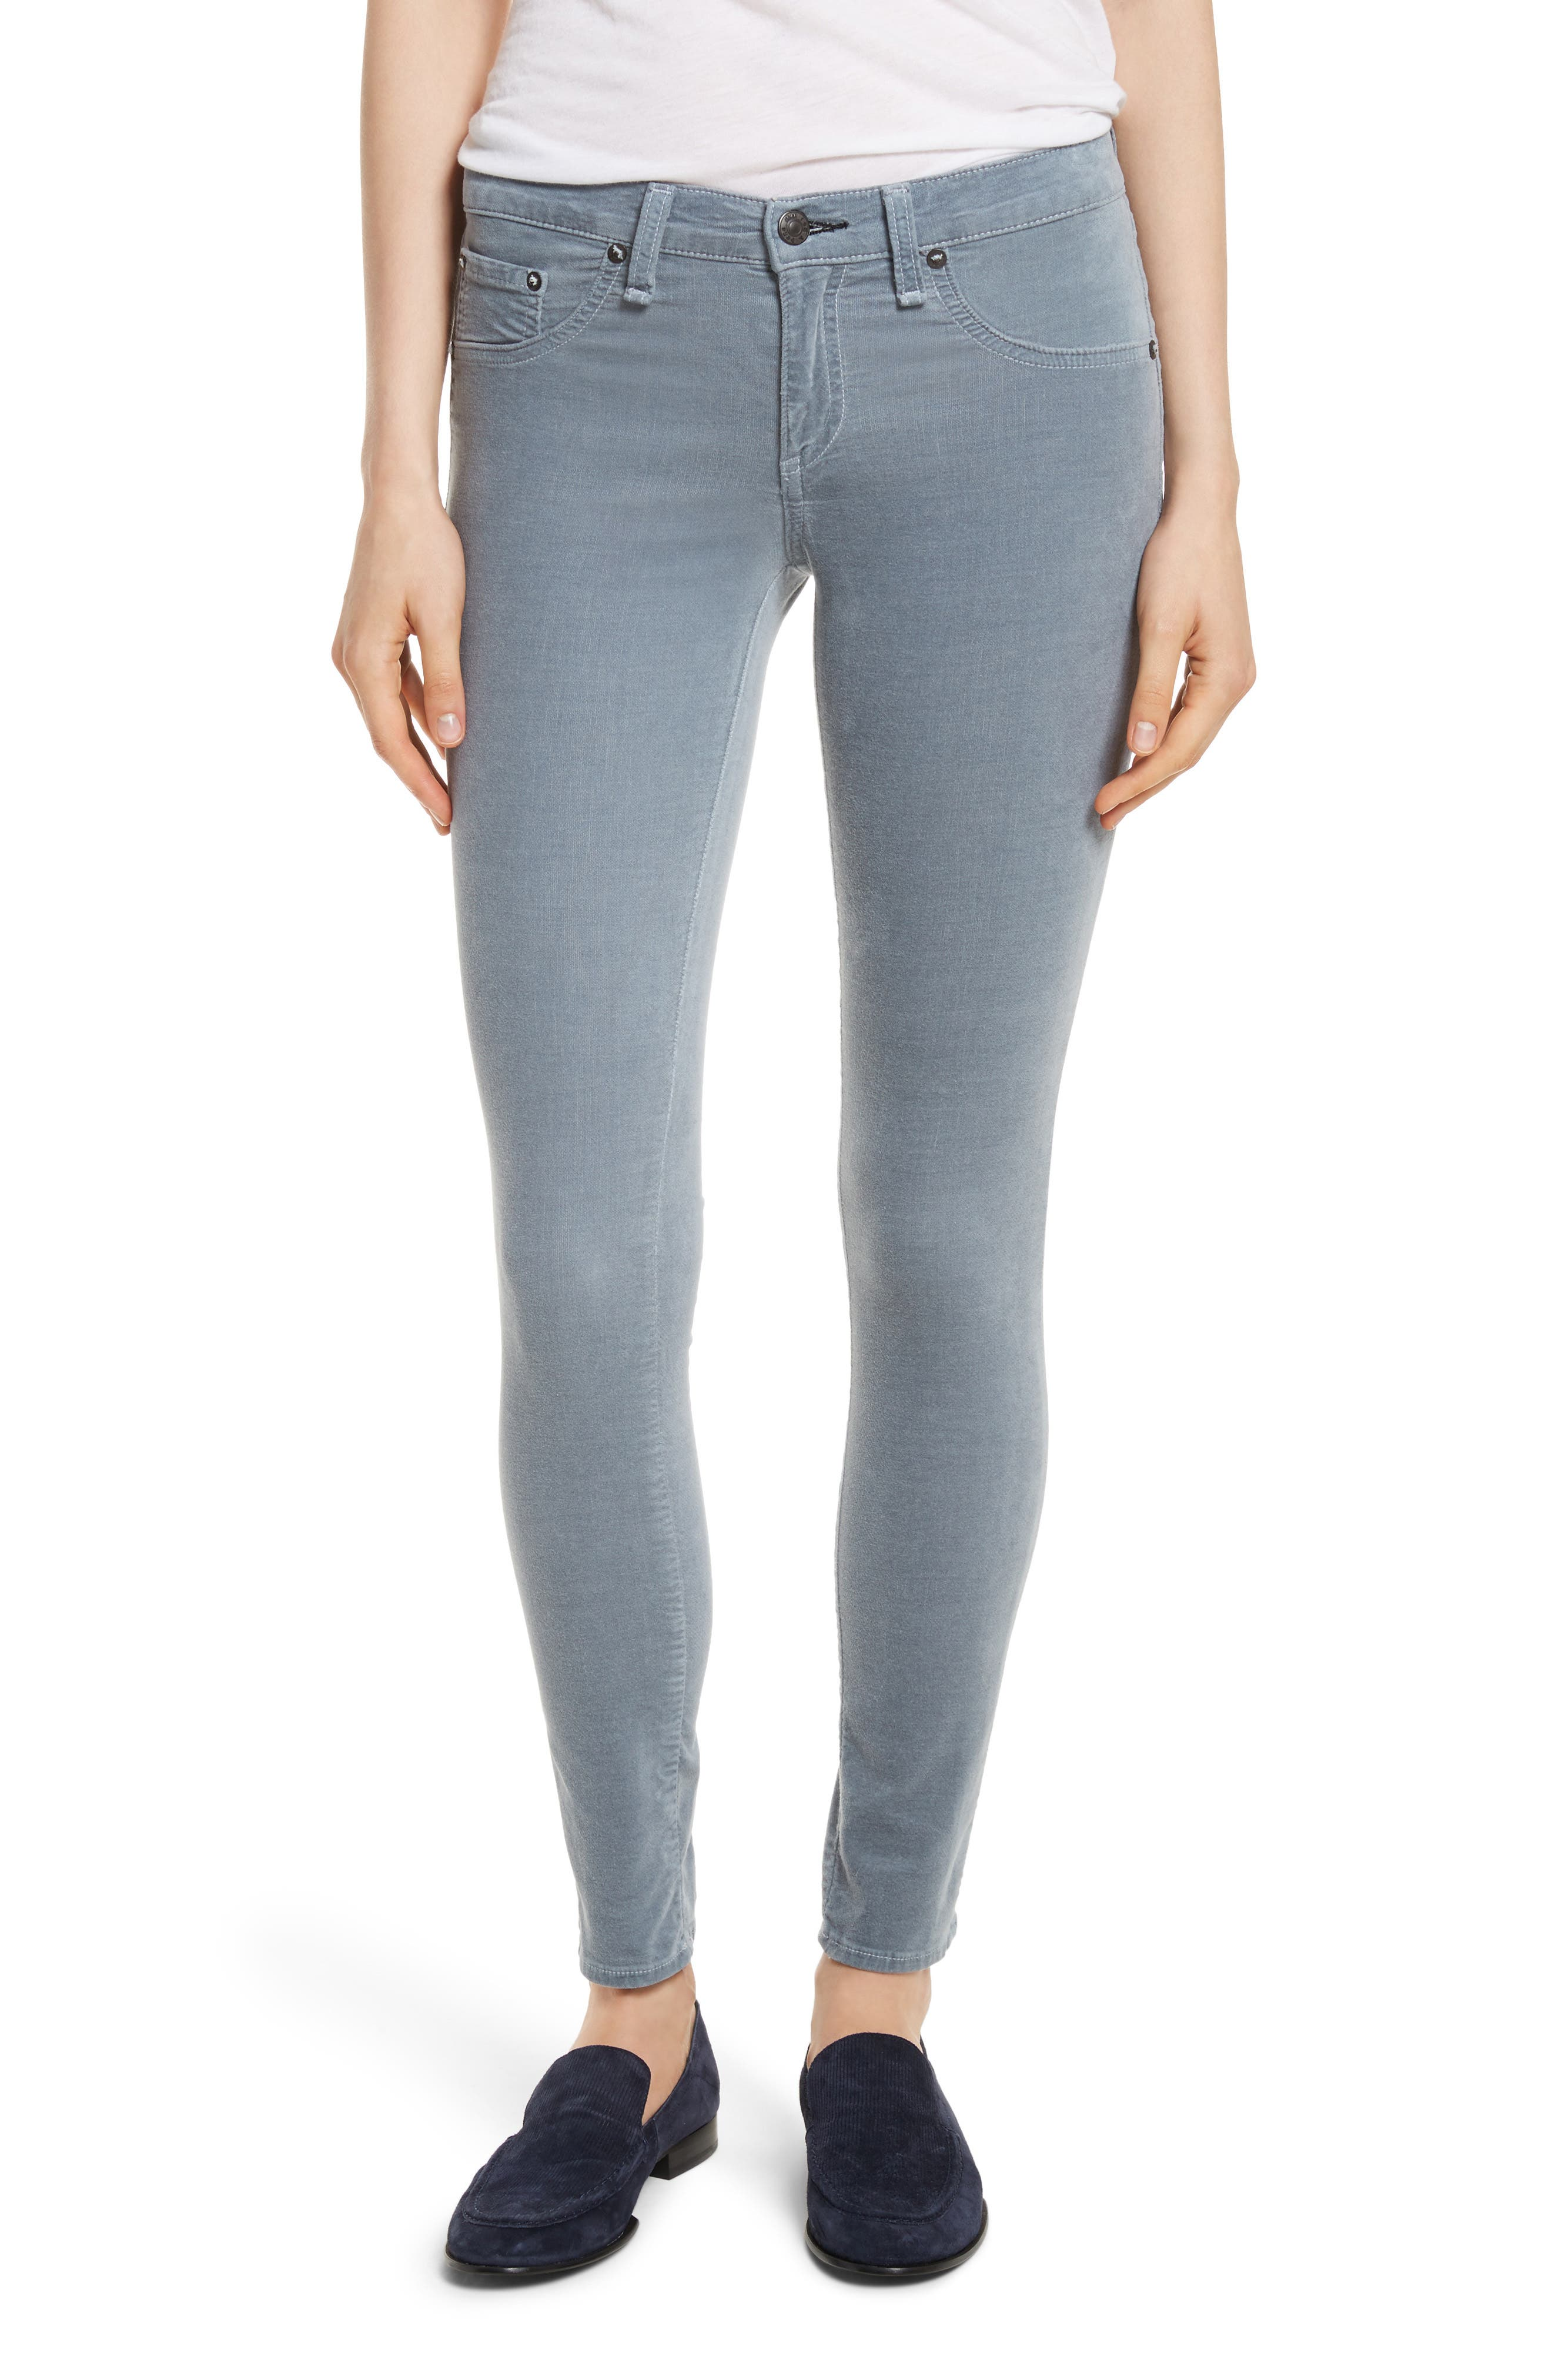 Alternate Image 1 Selected - rag & bone/JEAN Velvet Skinny Jeans